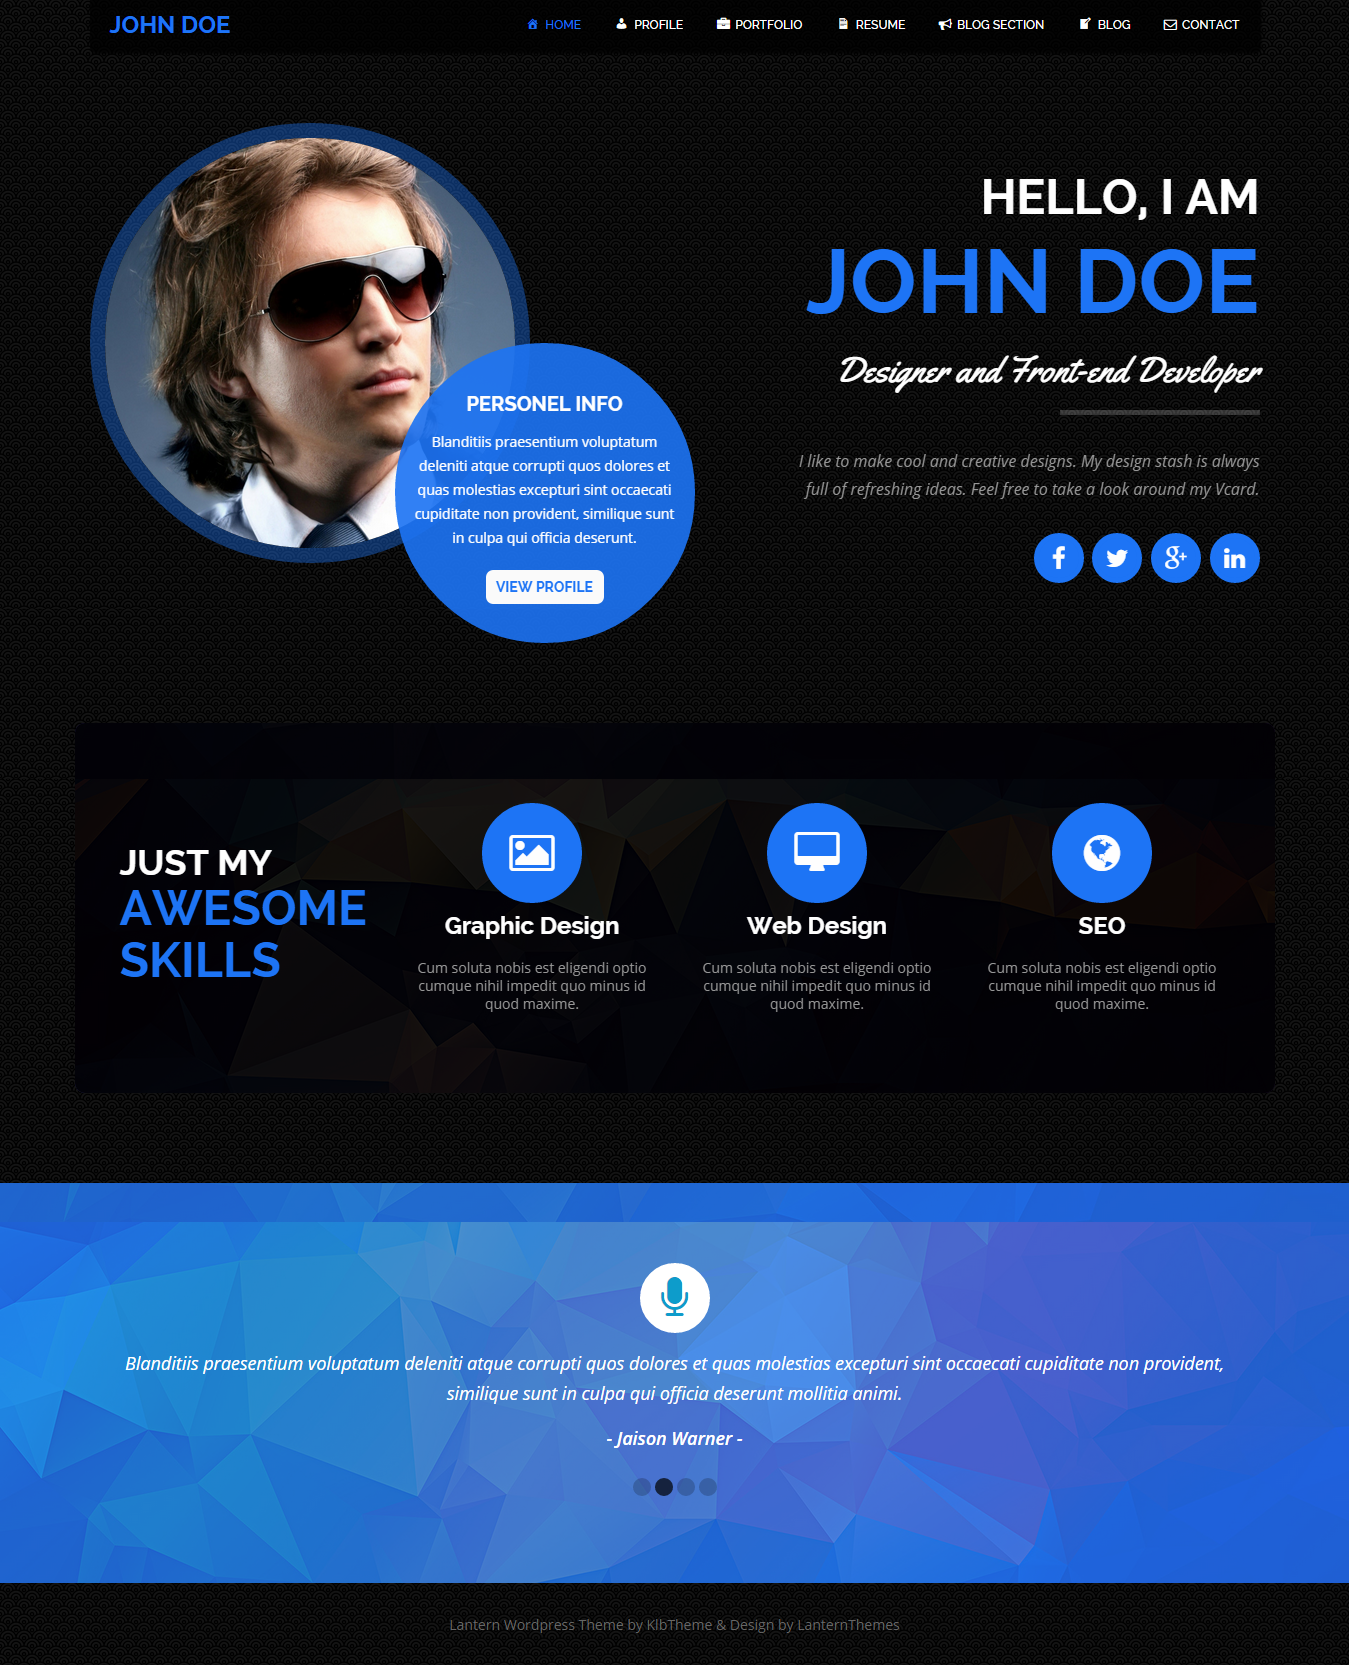 lantern personal resume and portfolio theme. Resume Example. Resume CV Cover Letter